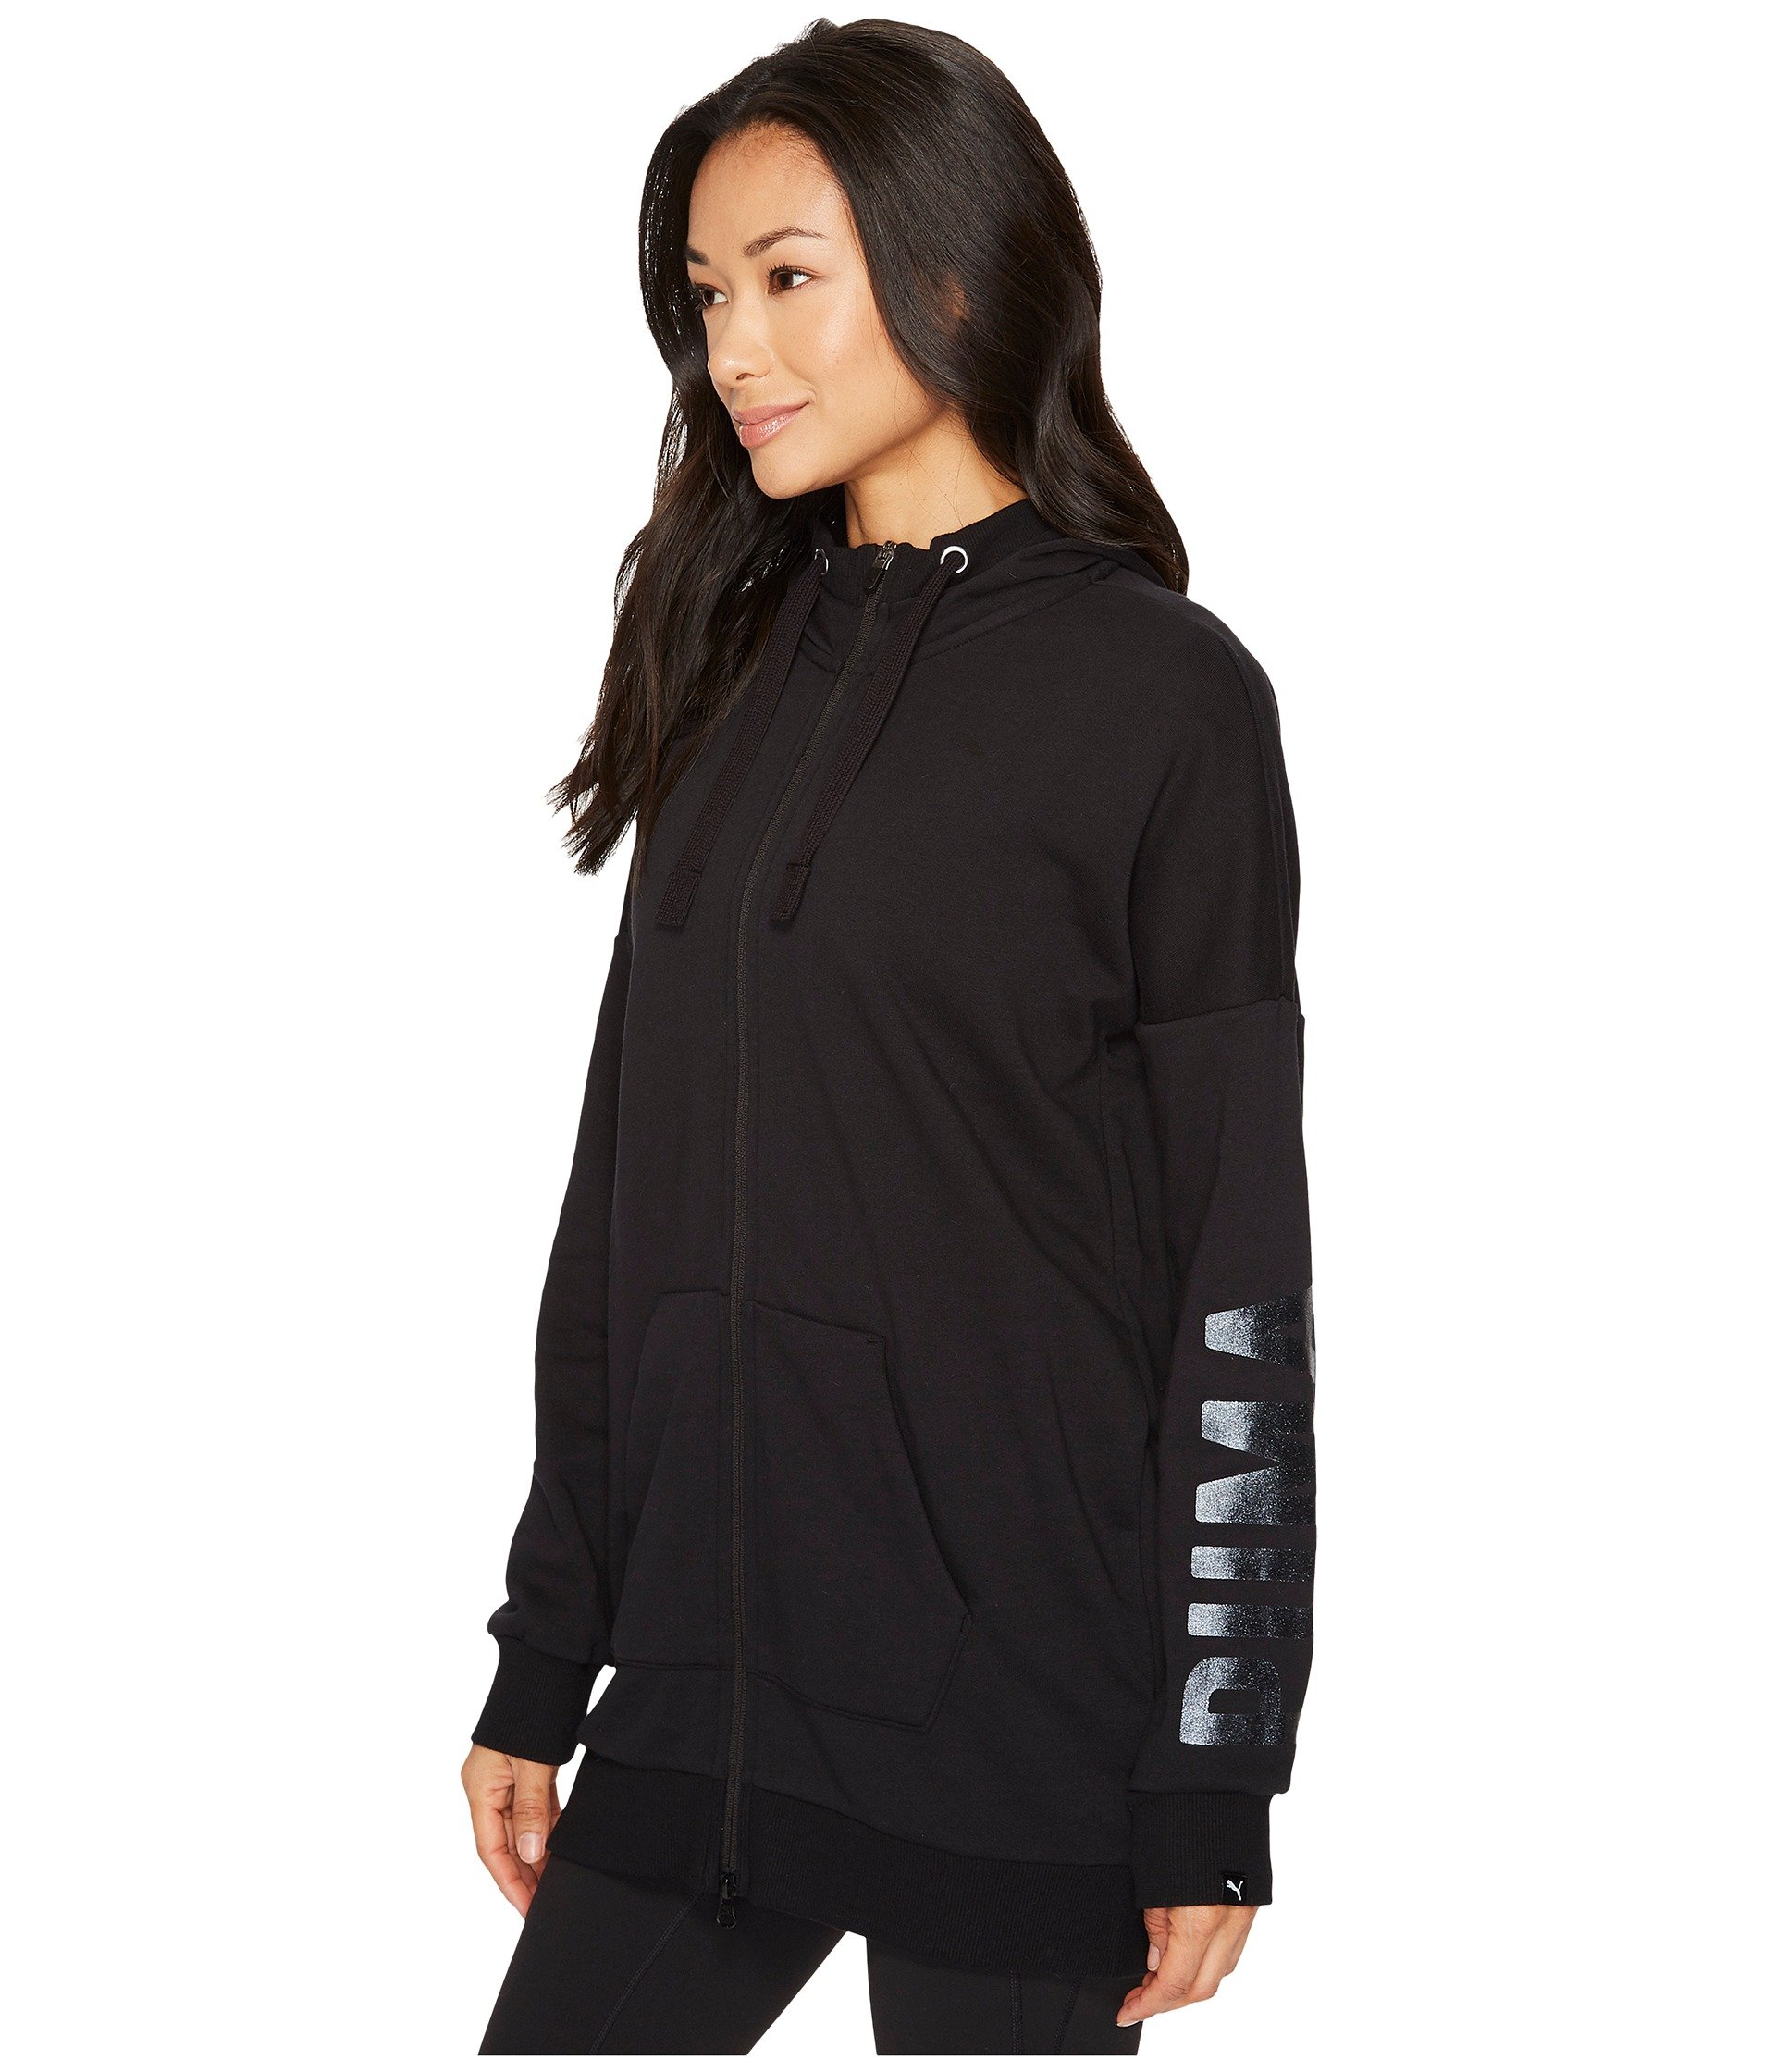 PUMA Women's Fusion Elongated Full Zip Hoodie Cotton Black/Glitter X-Large by PUMA (Image #3)